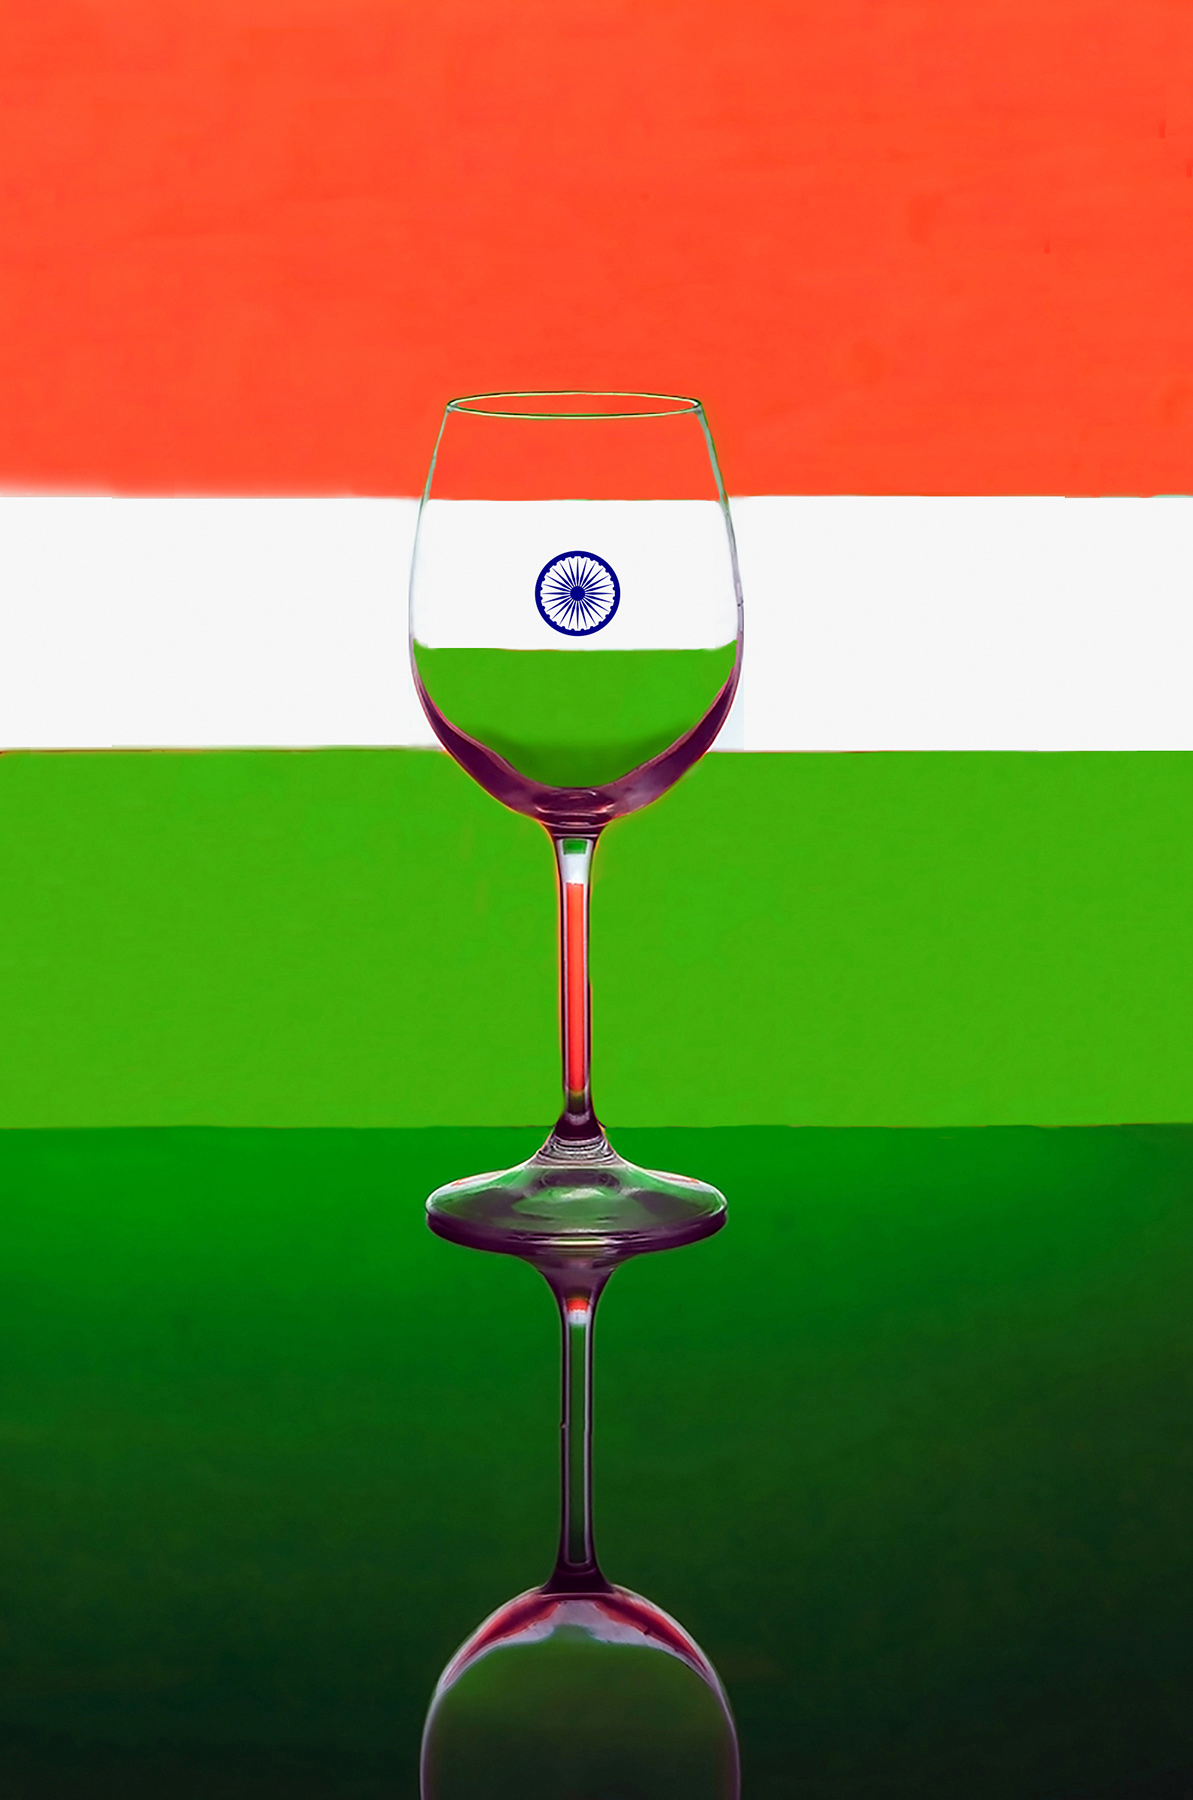 India represented in a glass!